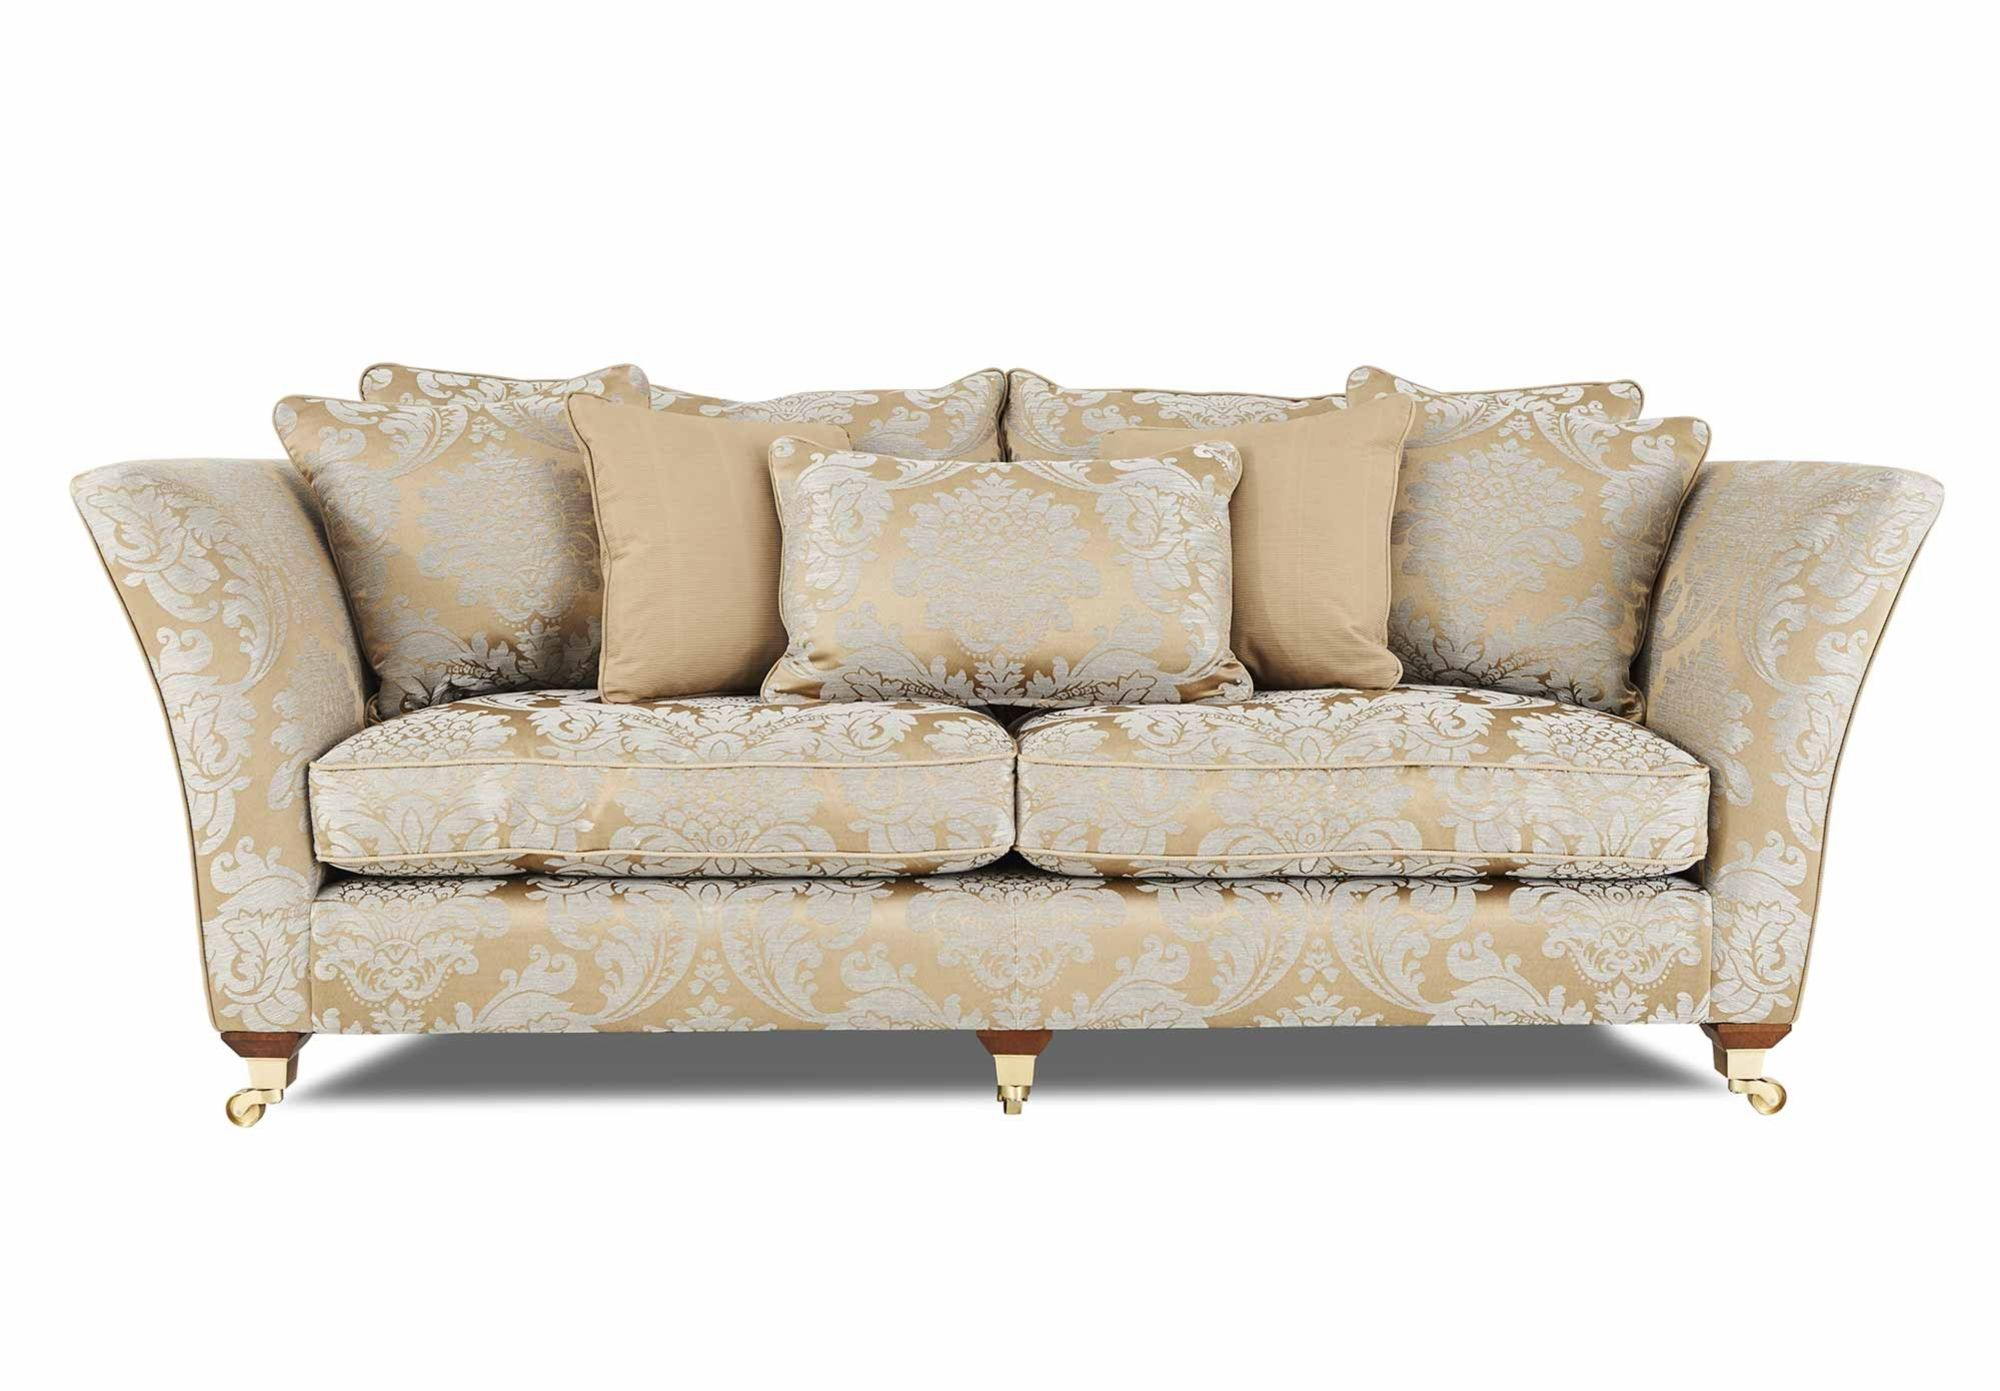 Kitchener Furniture Stores 4 Seater Sofa Vantage Gorgeous Living Room Furniture